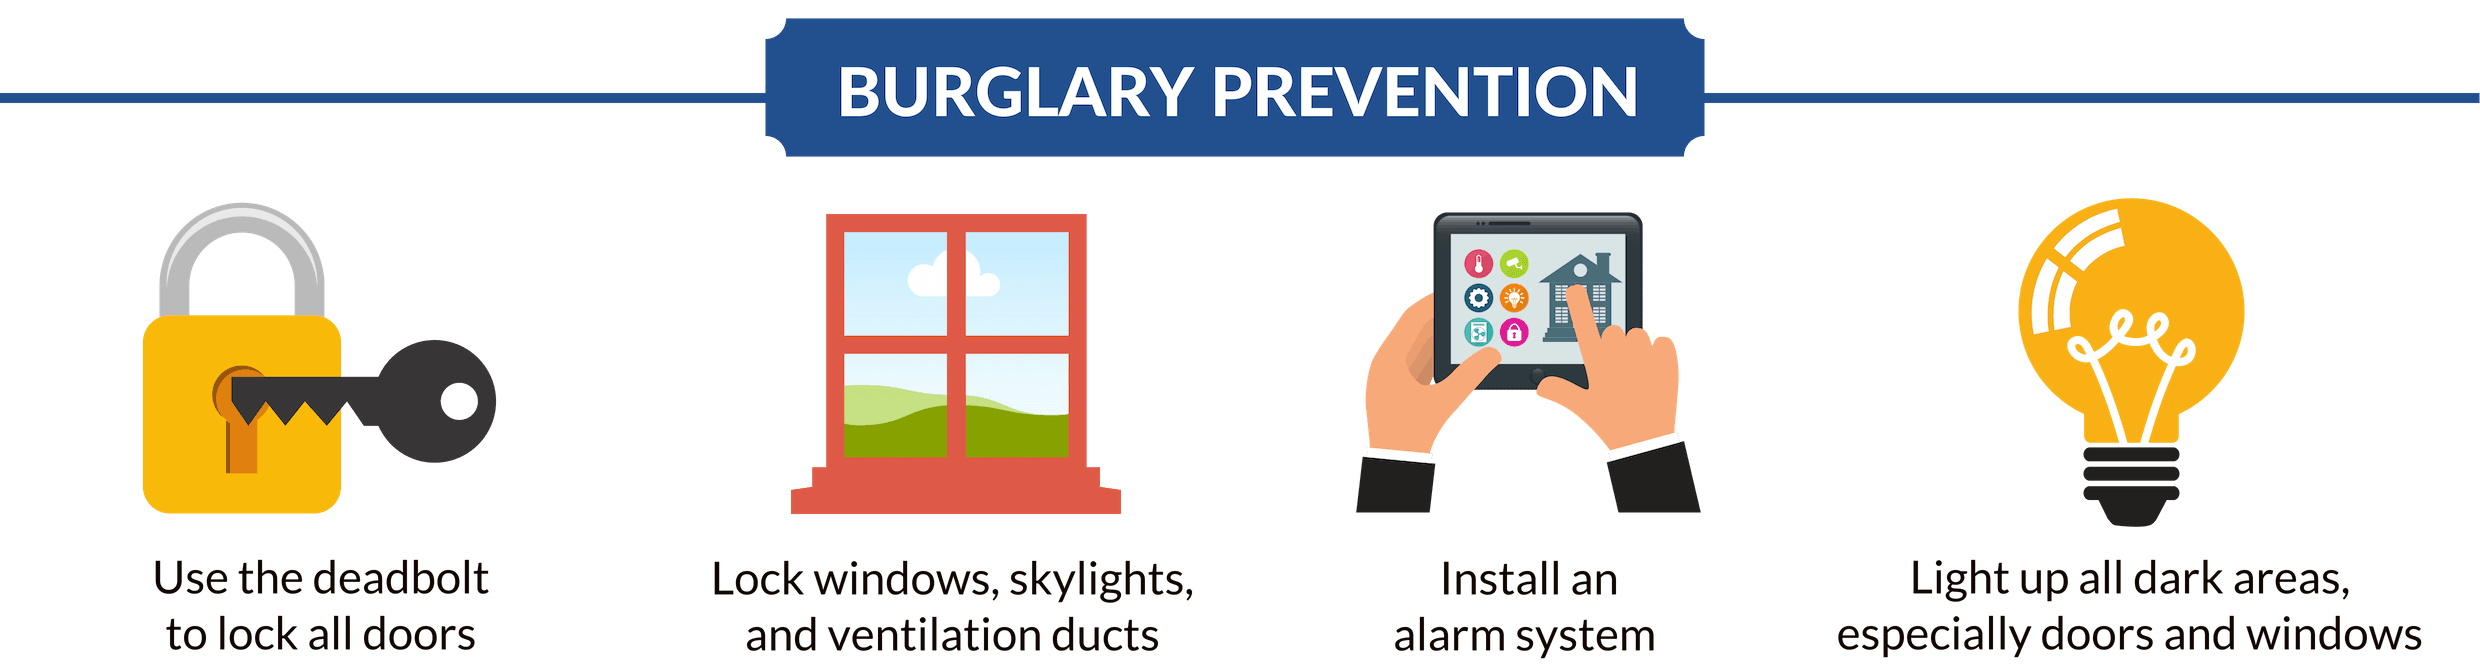 Banner with Burglary Prevention Tips